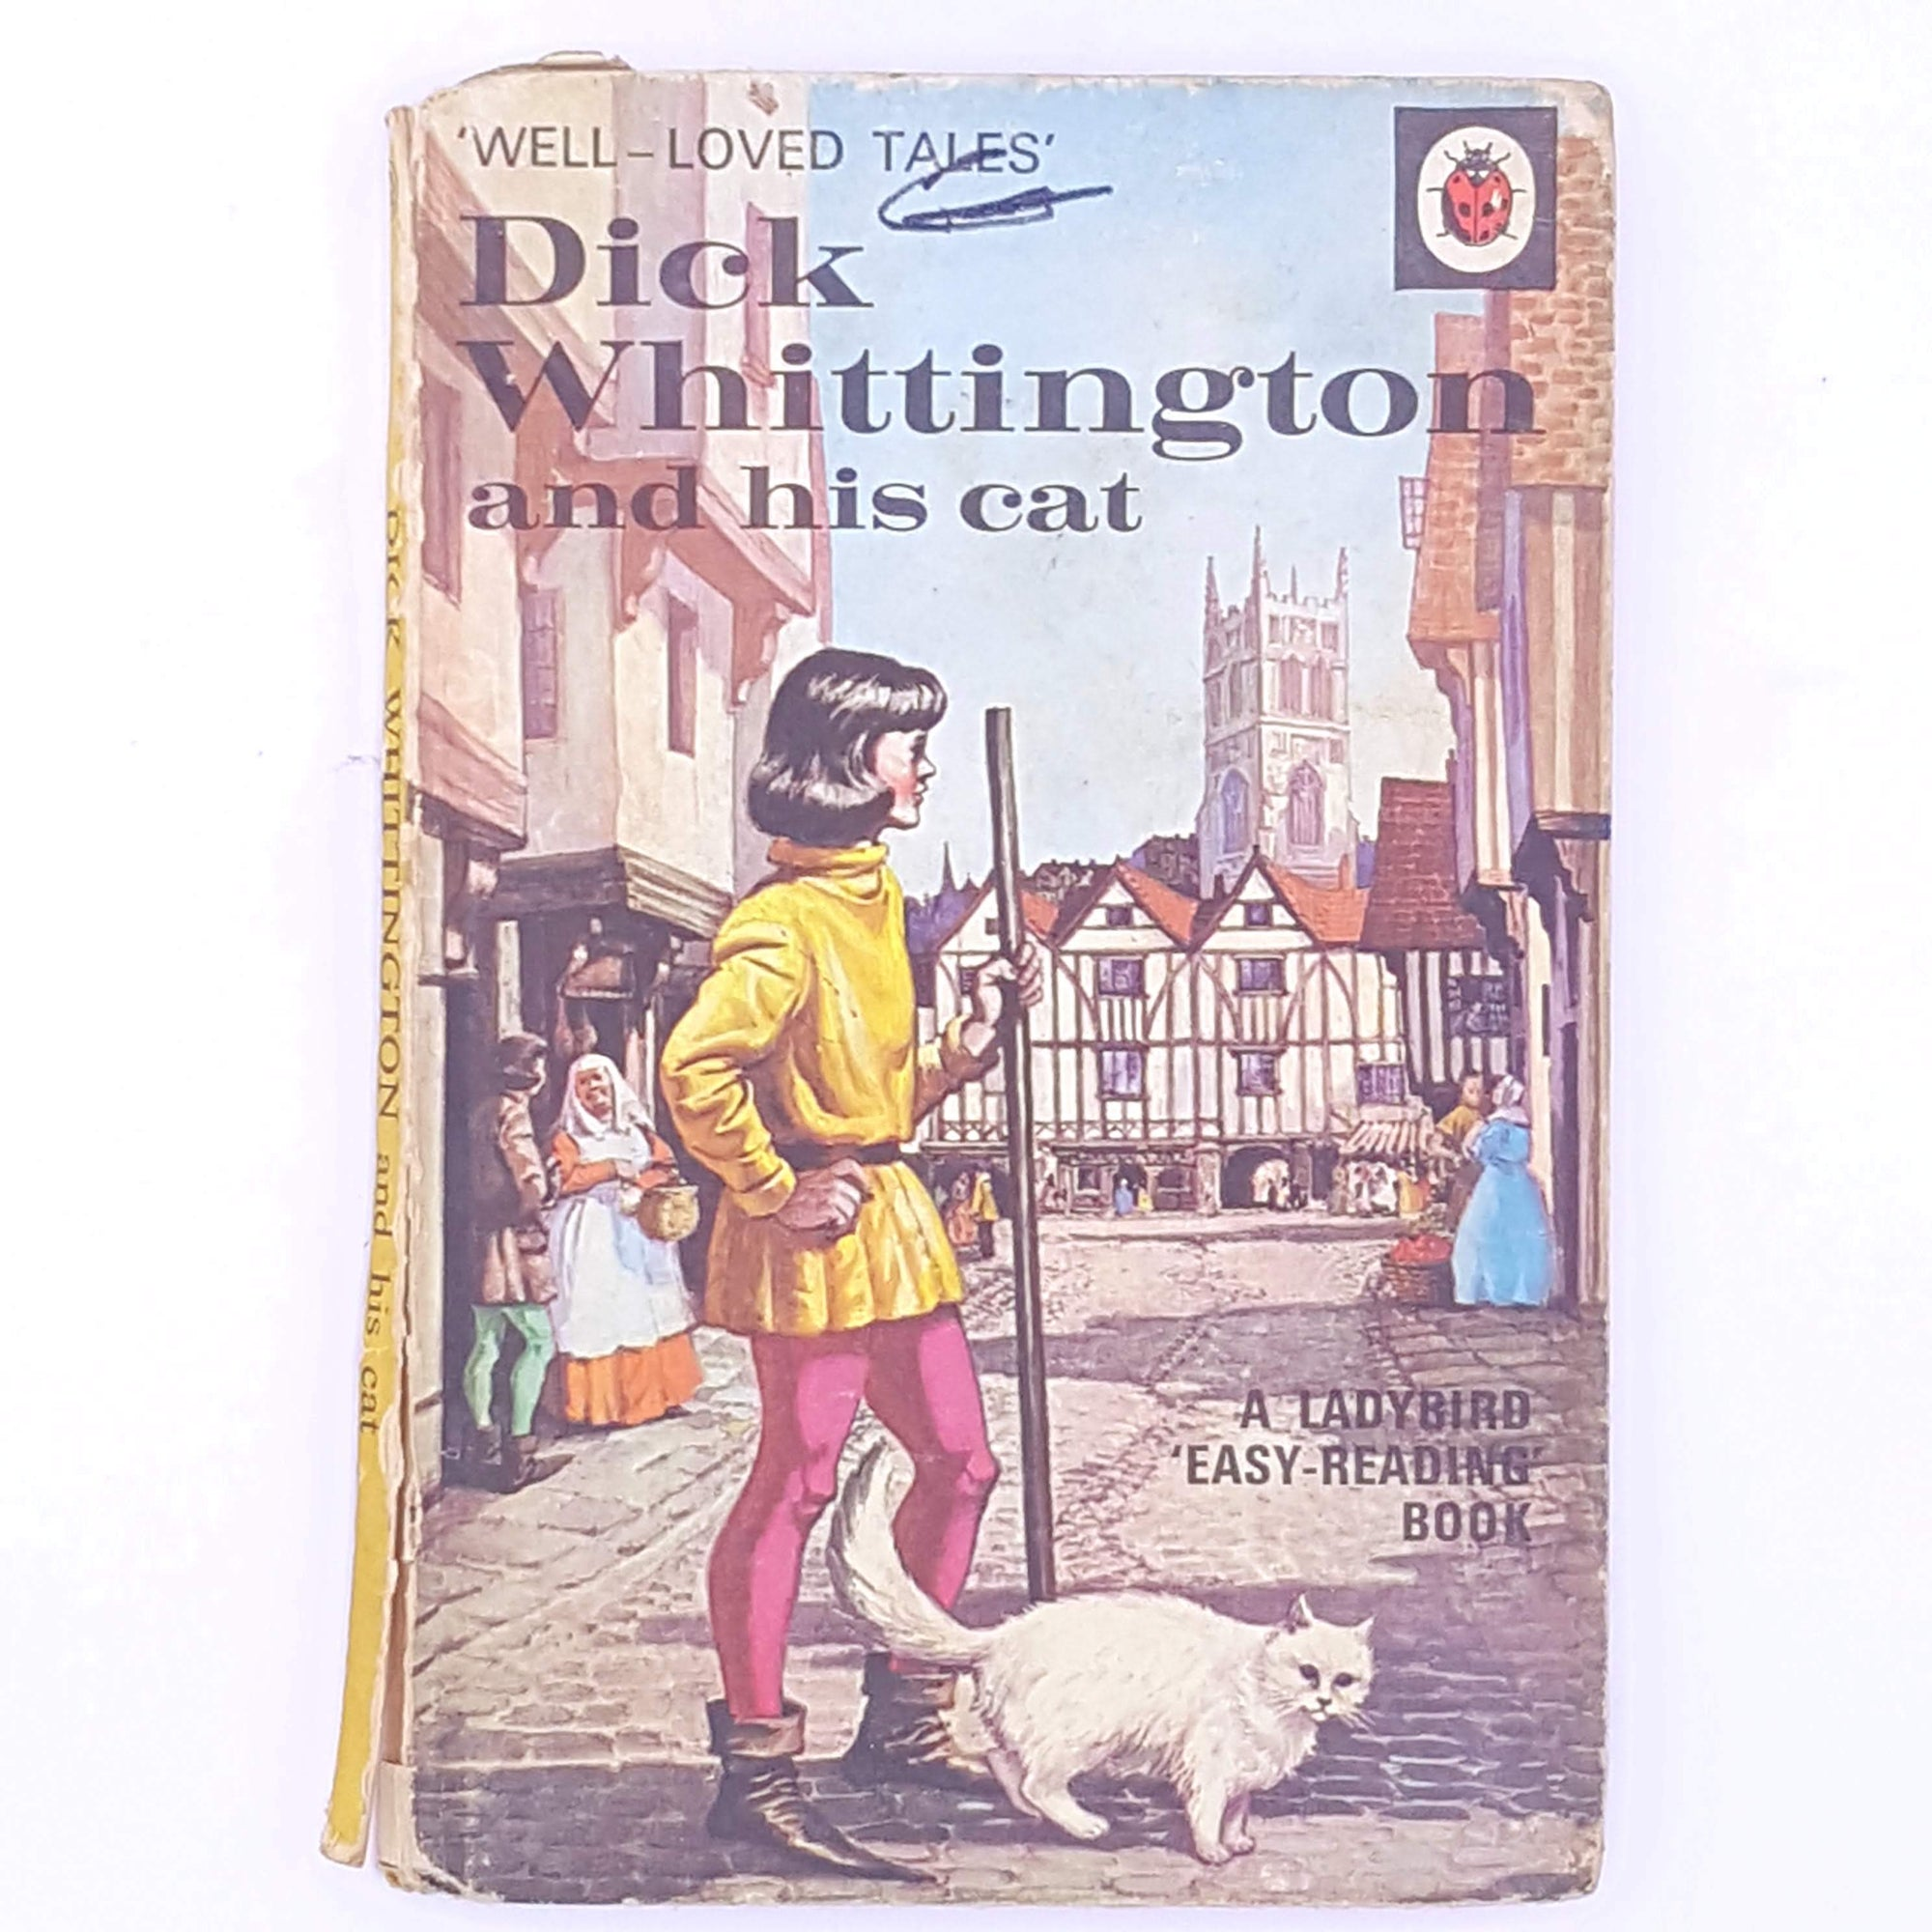 country-house-library-ladybird-patterned-old-classic-books-antique-decorative-vintage-dick-whittington-and-his-cat-thrift-christmas-gifts-for-kids-